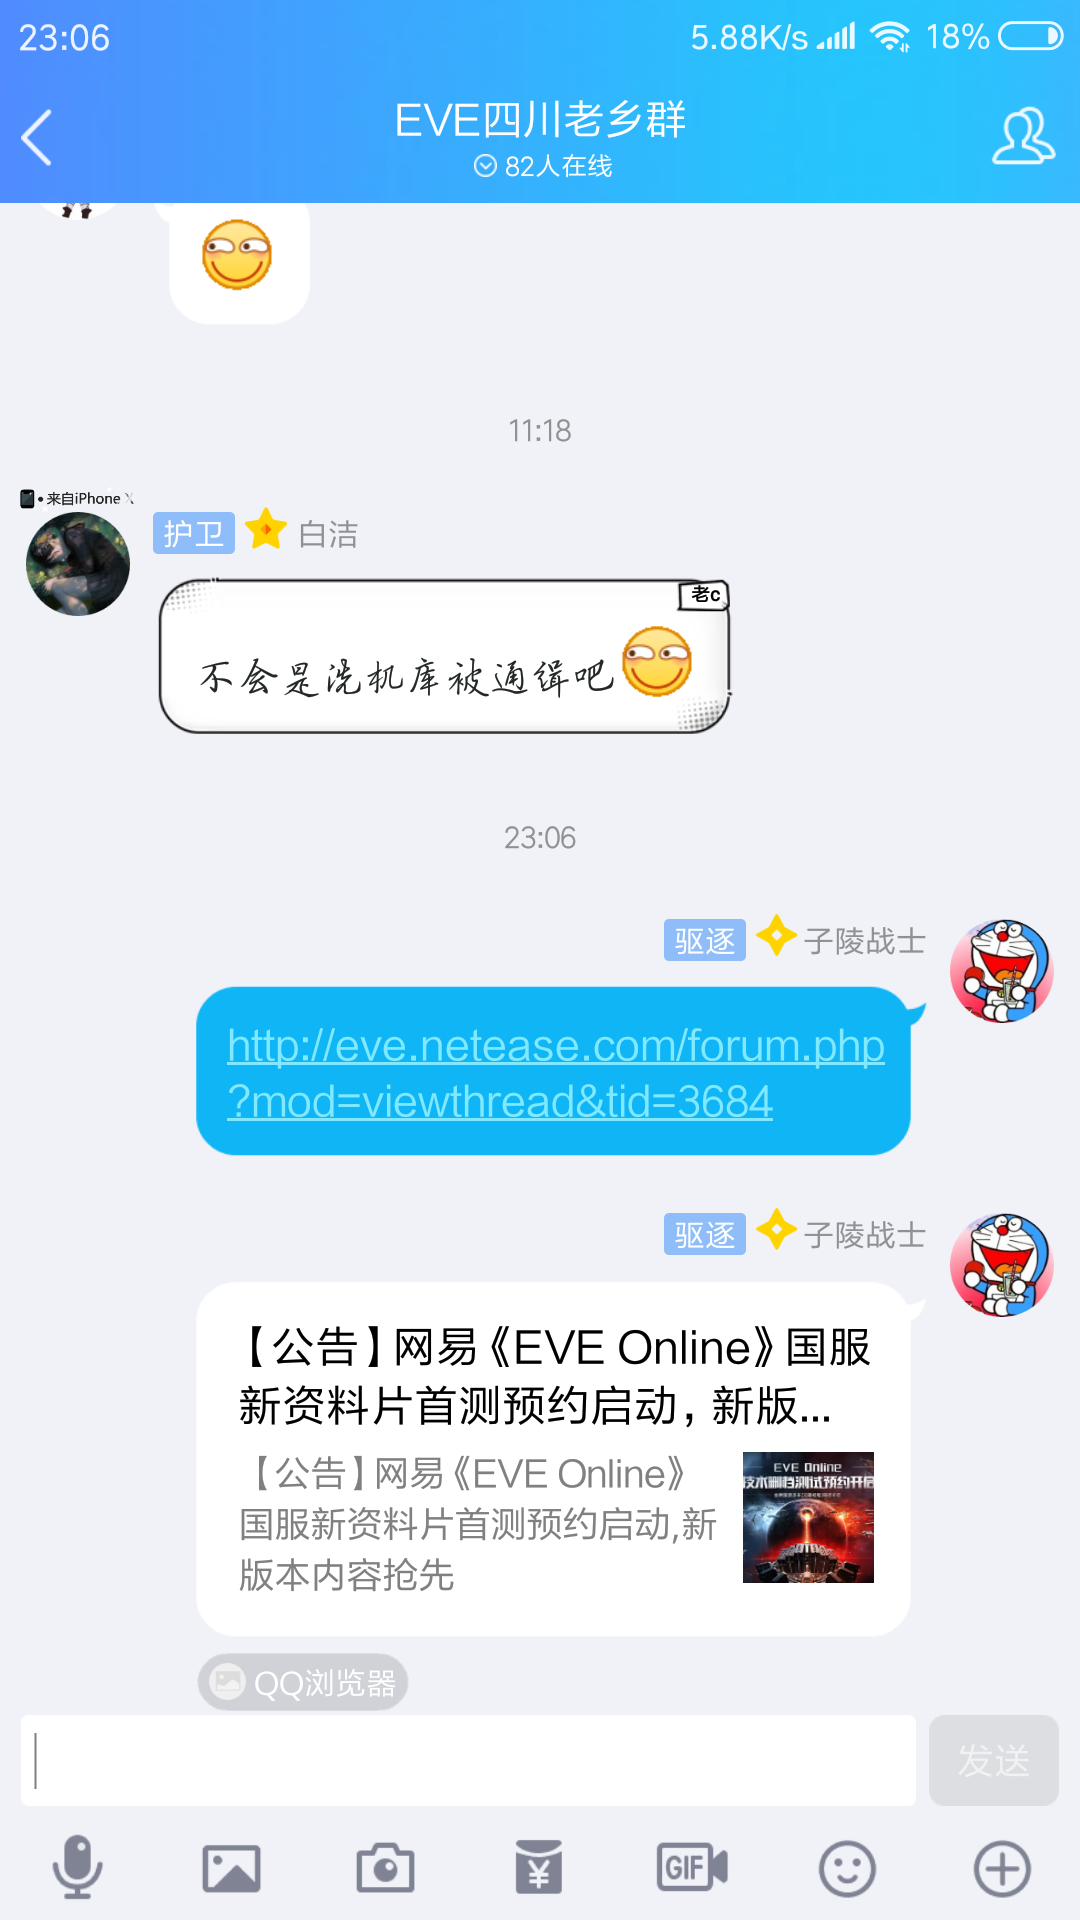 Screenshot_2018-11-25-23-06-52-015_com.tencent.mo.png